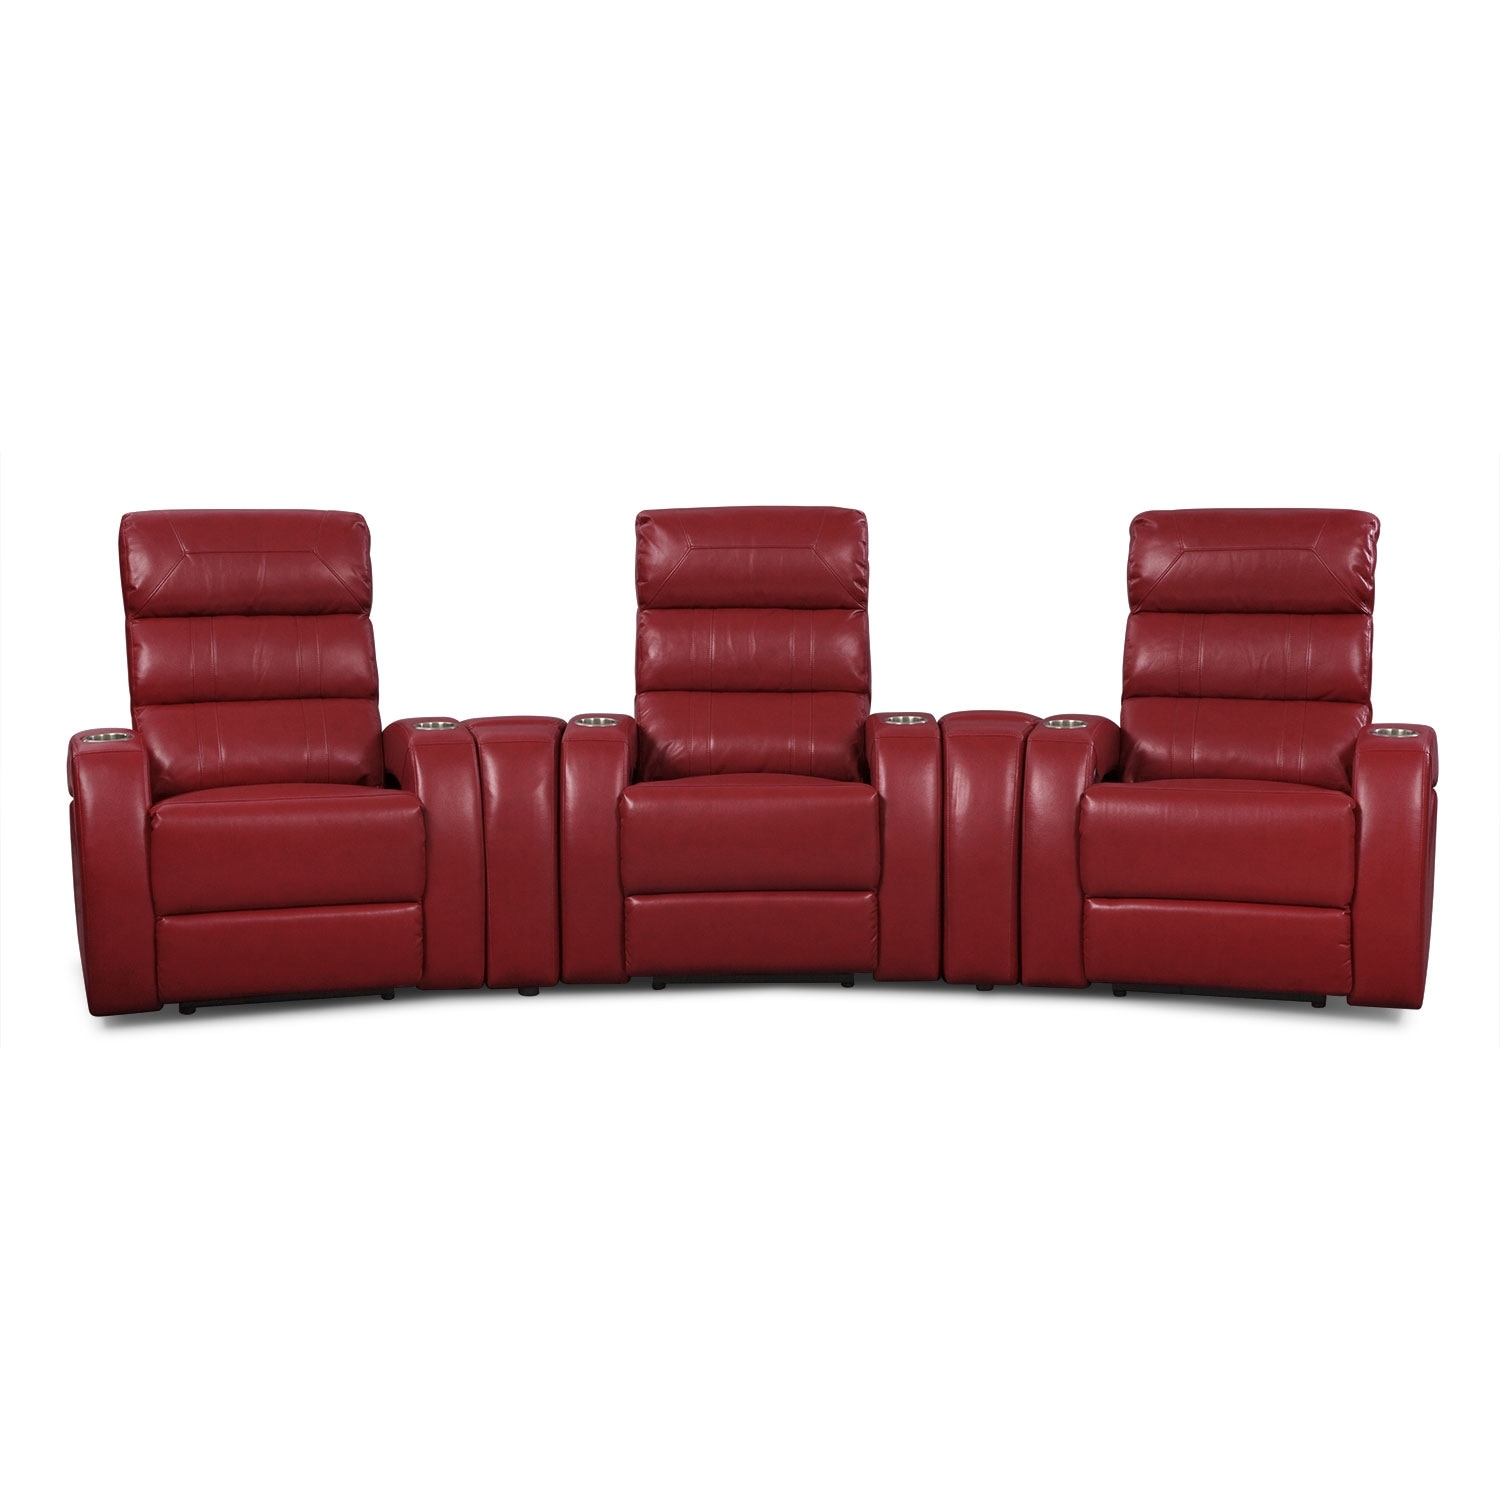 [Gemini III 5 Pc. Power Home Theater Sectional]